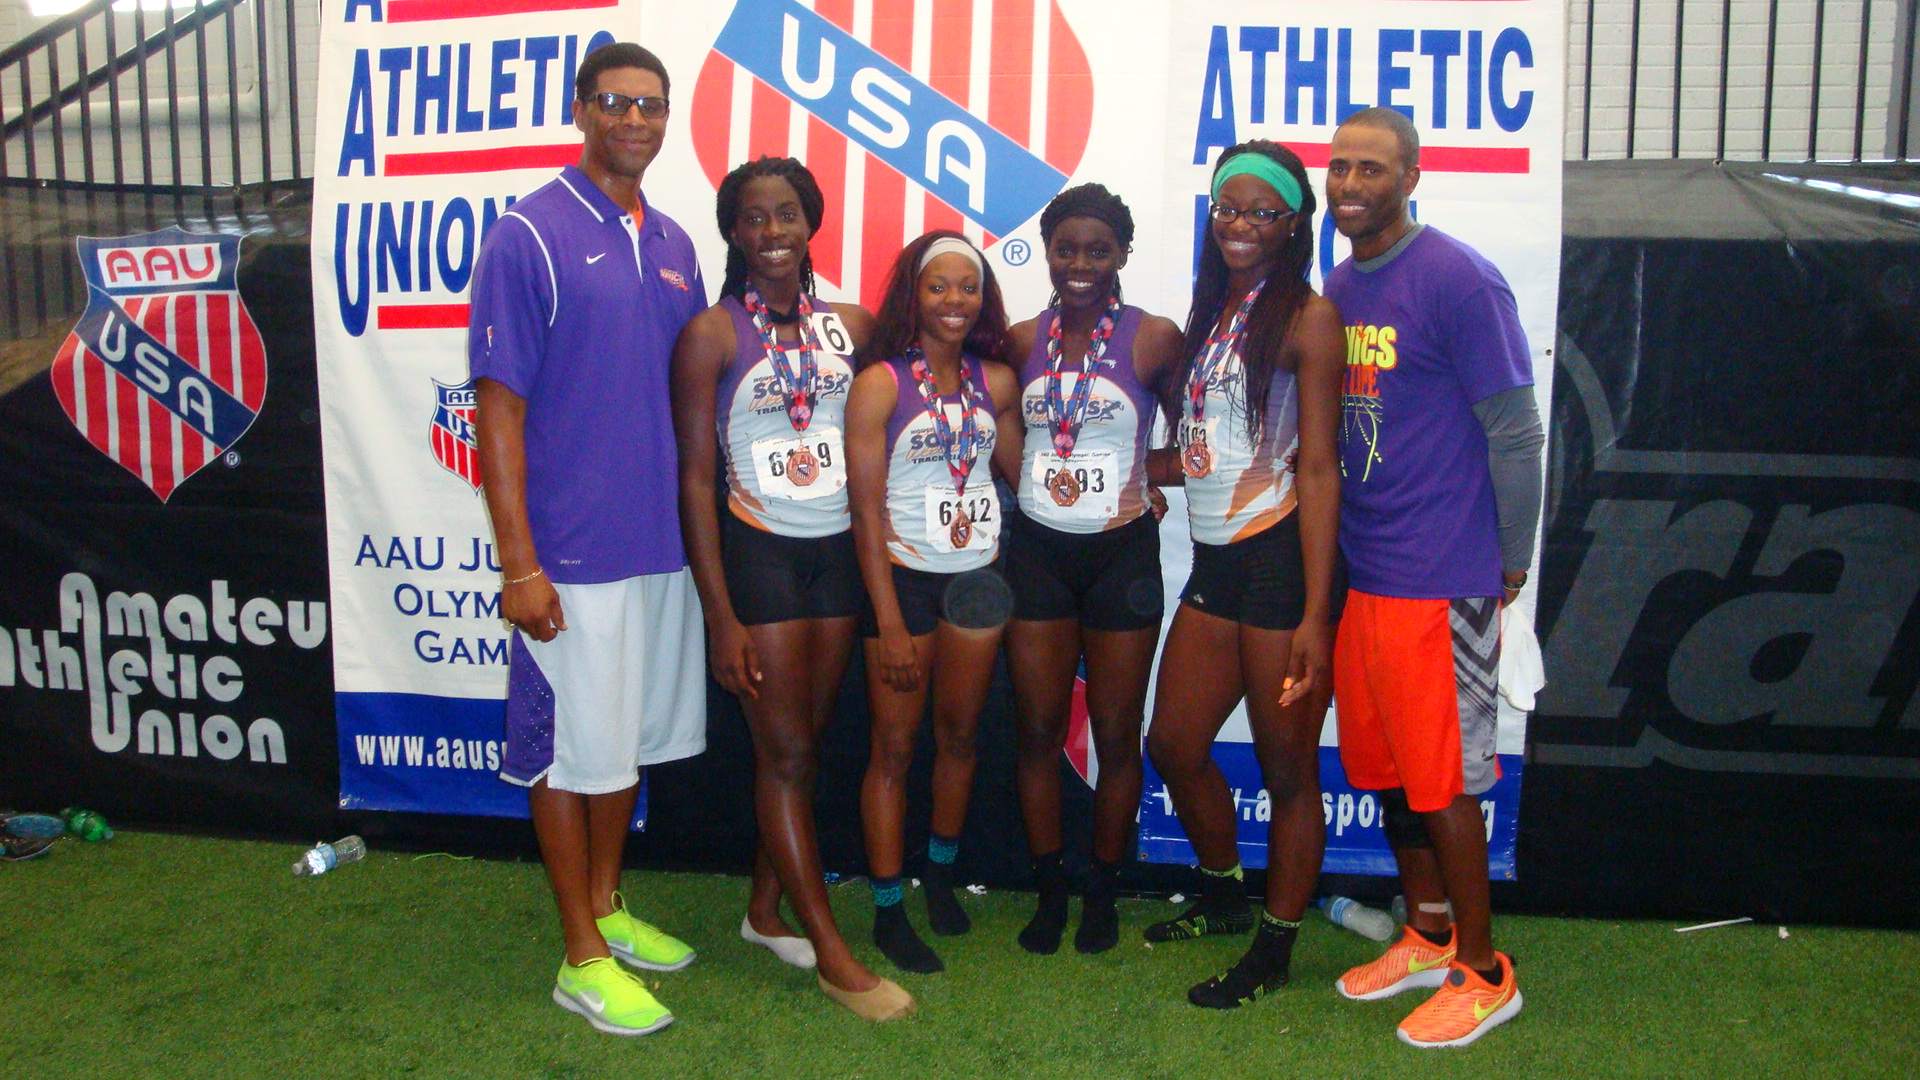 17-18 women 4x400 team and coaches